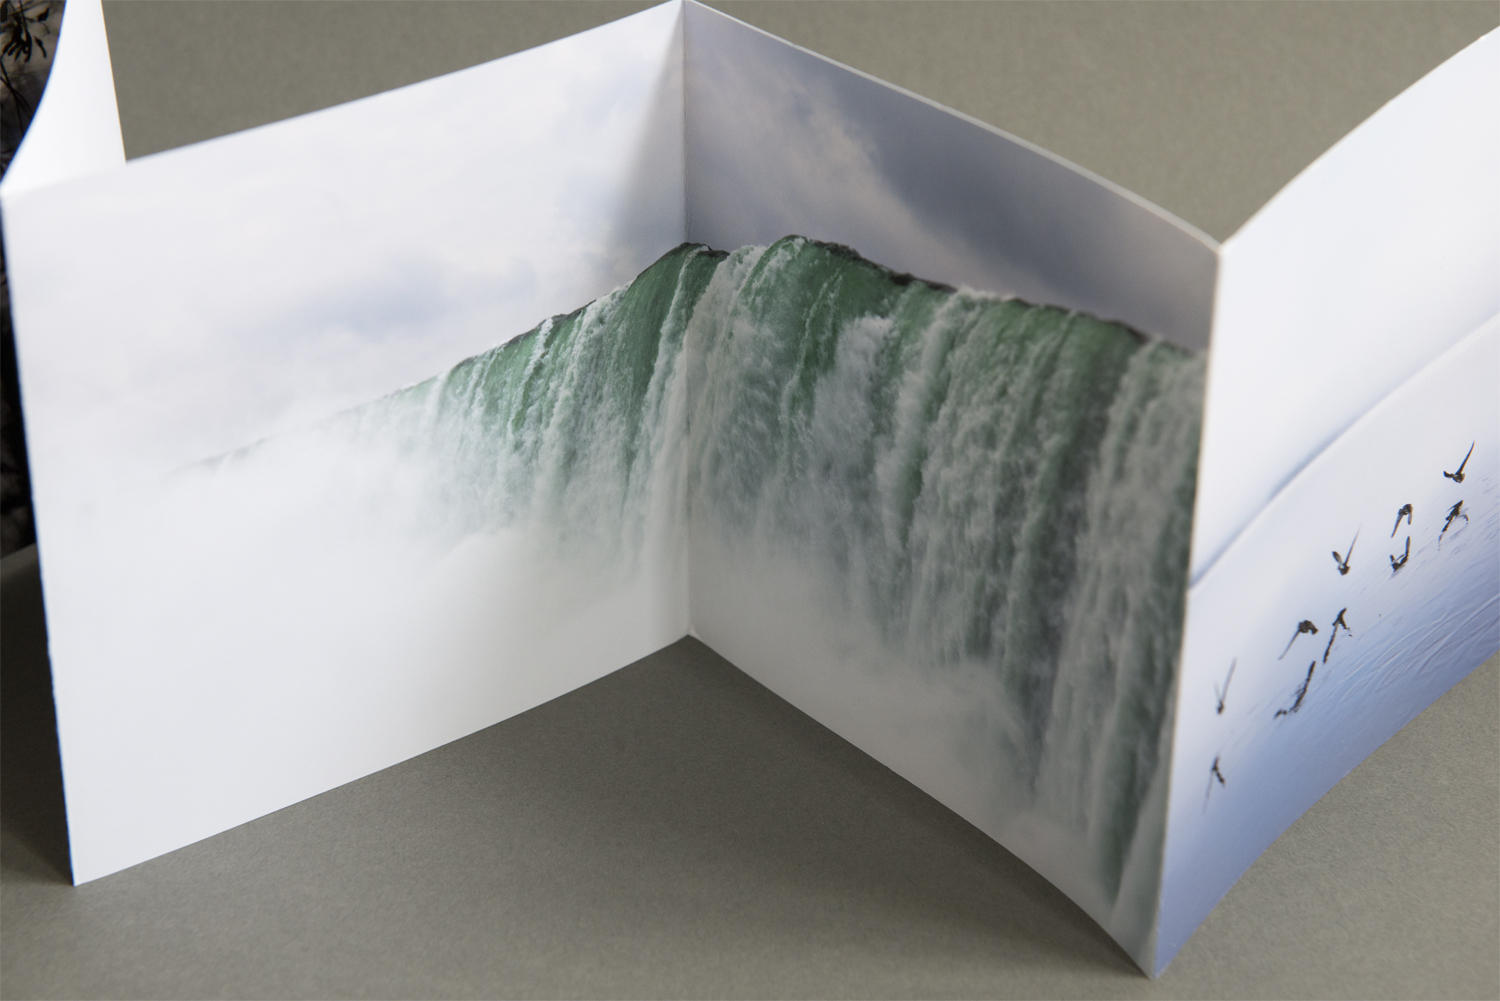 The small square book is an edition of 50 and features photographs from an ongoing project. The uncoated paper has a rich texture that blends well with the subject matter. The contact information is easy to find, and the small size (for a book) makes this promo material easy to carry around during review events.